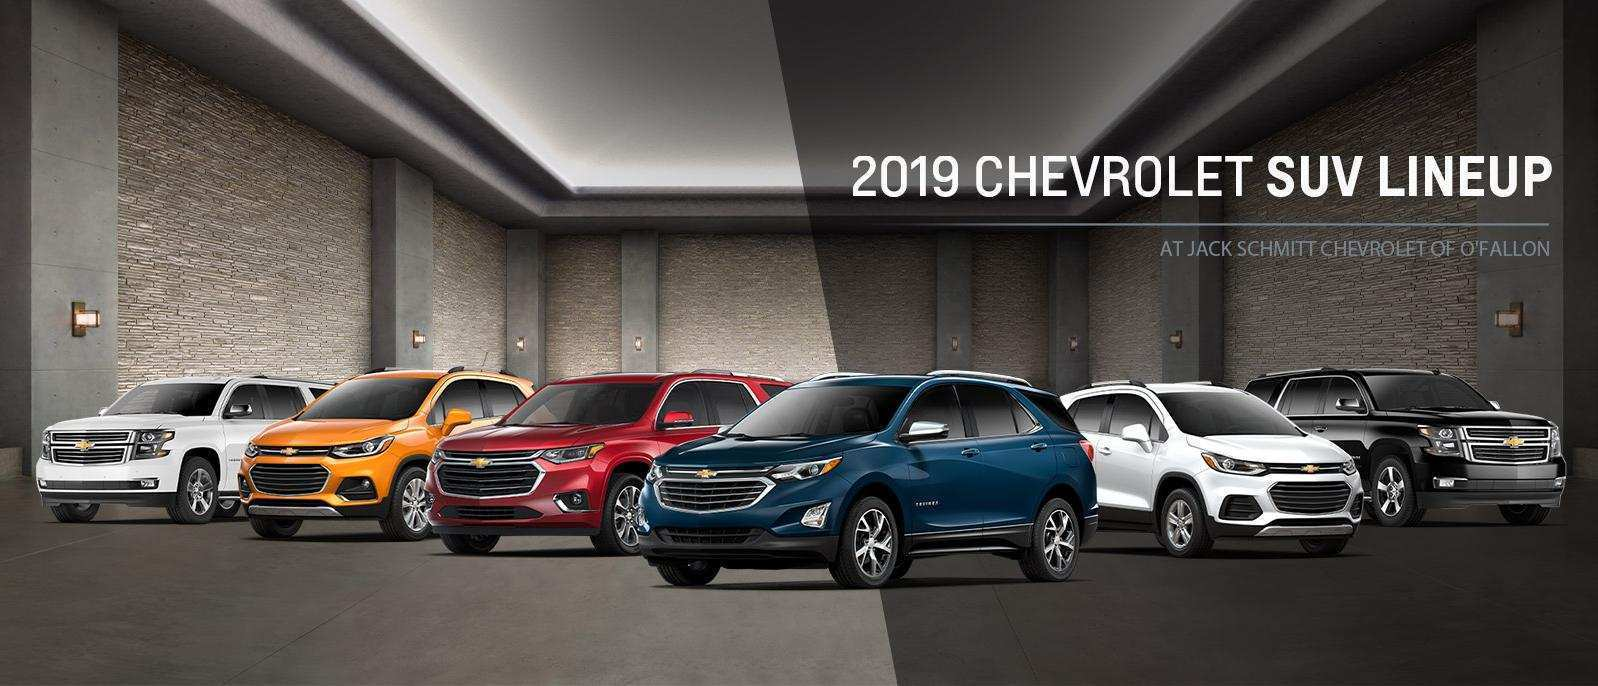 74 All New 2019 Chevrolet Lineup Reviews